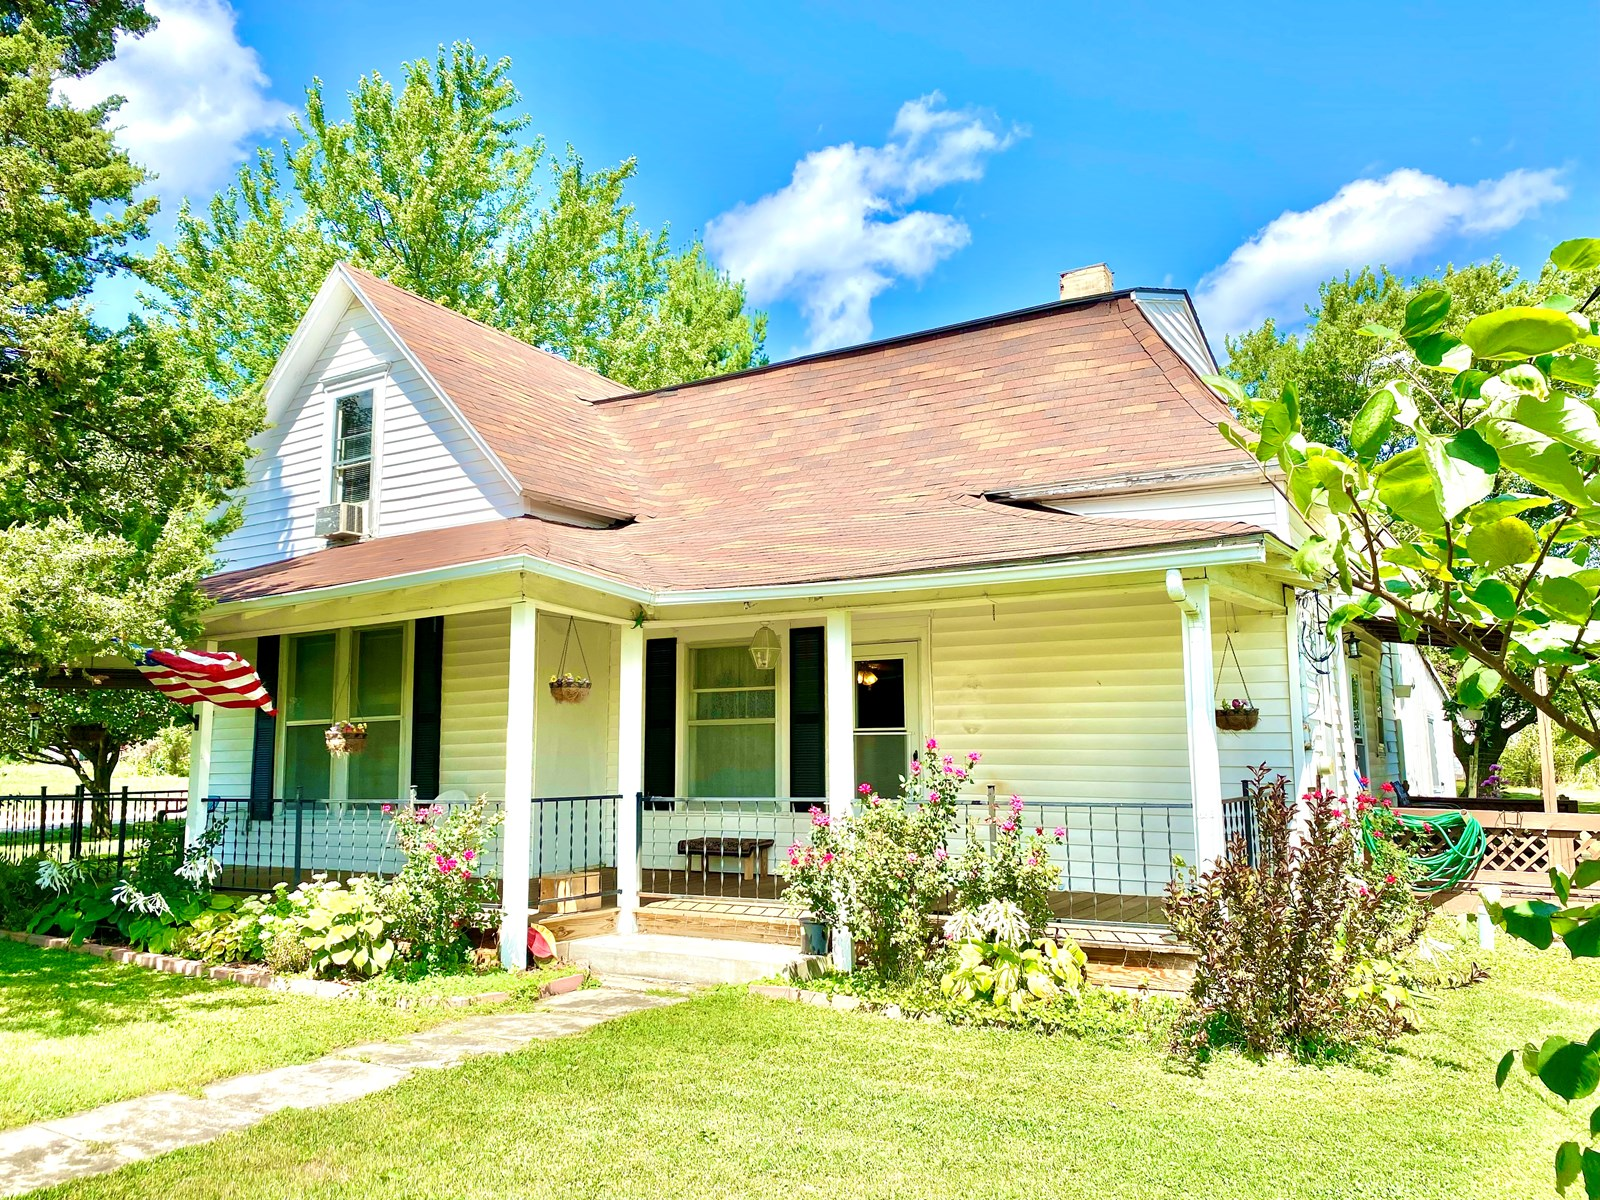 For Sale 3 BR Home on 1.5 Acres in Small Rural Town